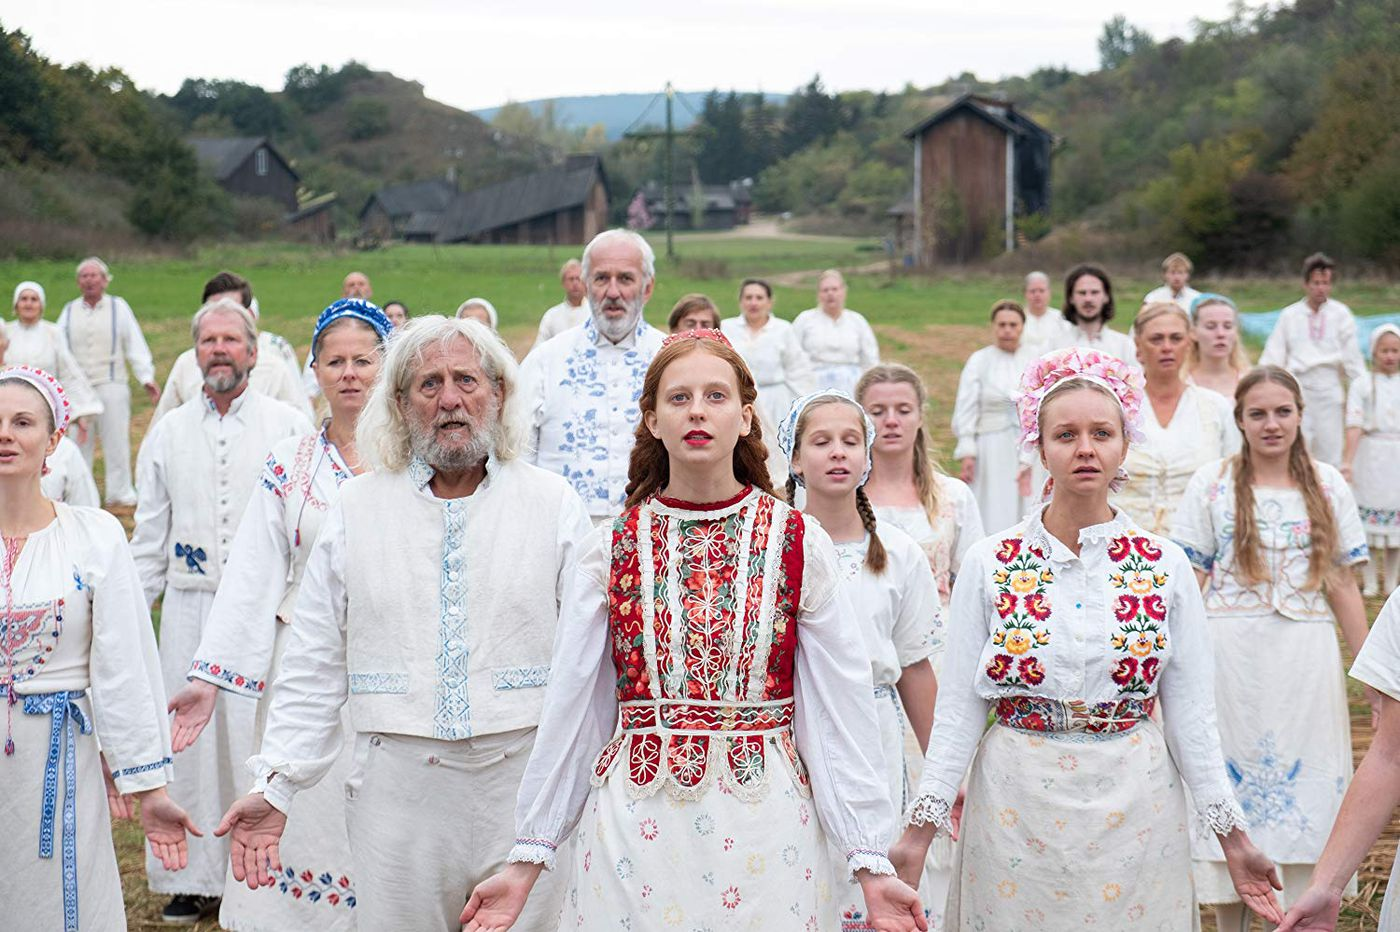 How Religious Sect Movies Like 'Midsommar' Get So Far Under Our Skin | KQED